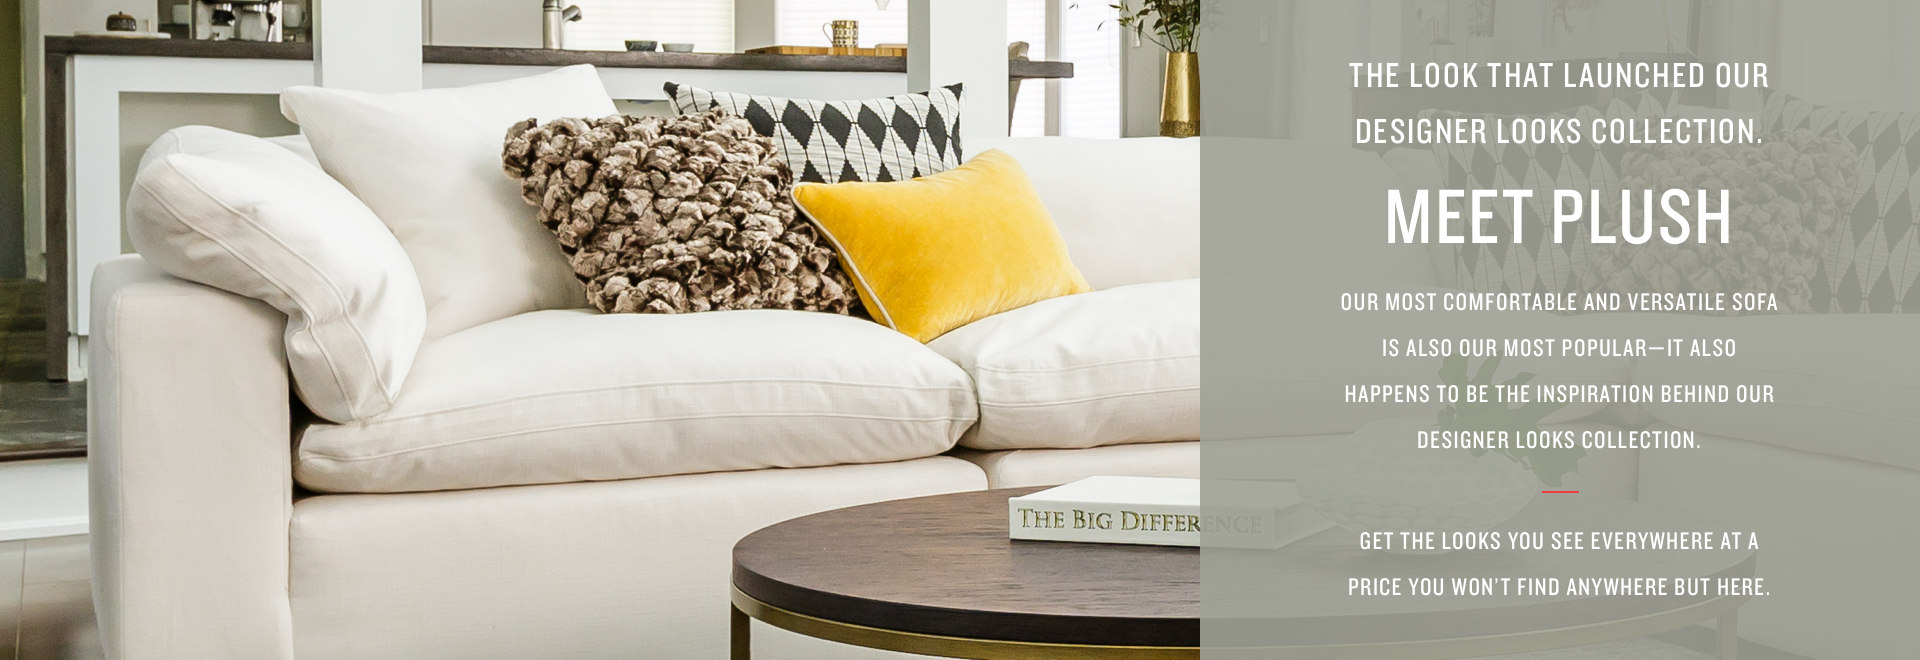 The look that launched our Designer Looks Collection. Meet Plush... Our most comfortable and versatile sofa is also our most popular sofa - it also happens to be the inspiration behind our Designer Looks Collection. Get the looks you see everywhere at a price you won't find anywhere but here.